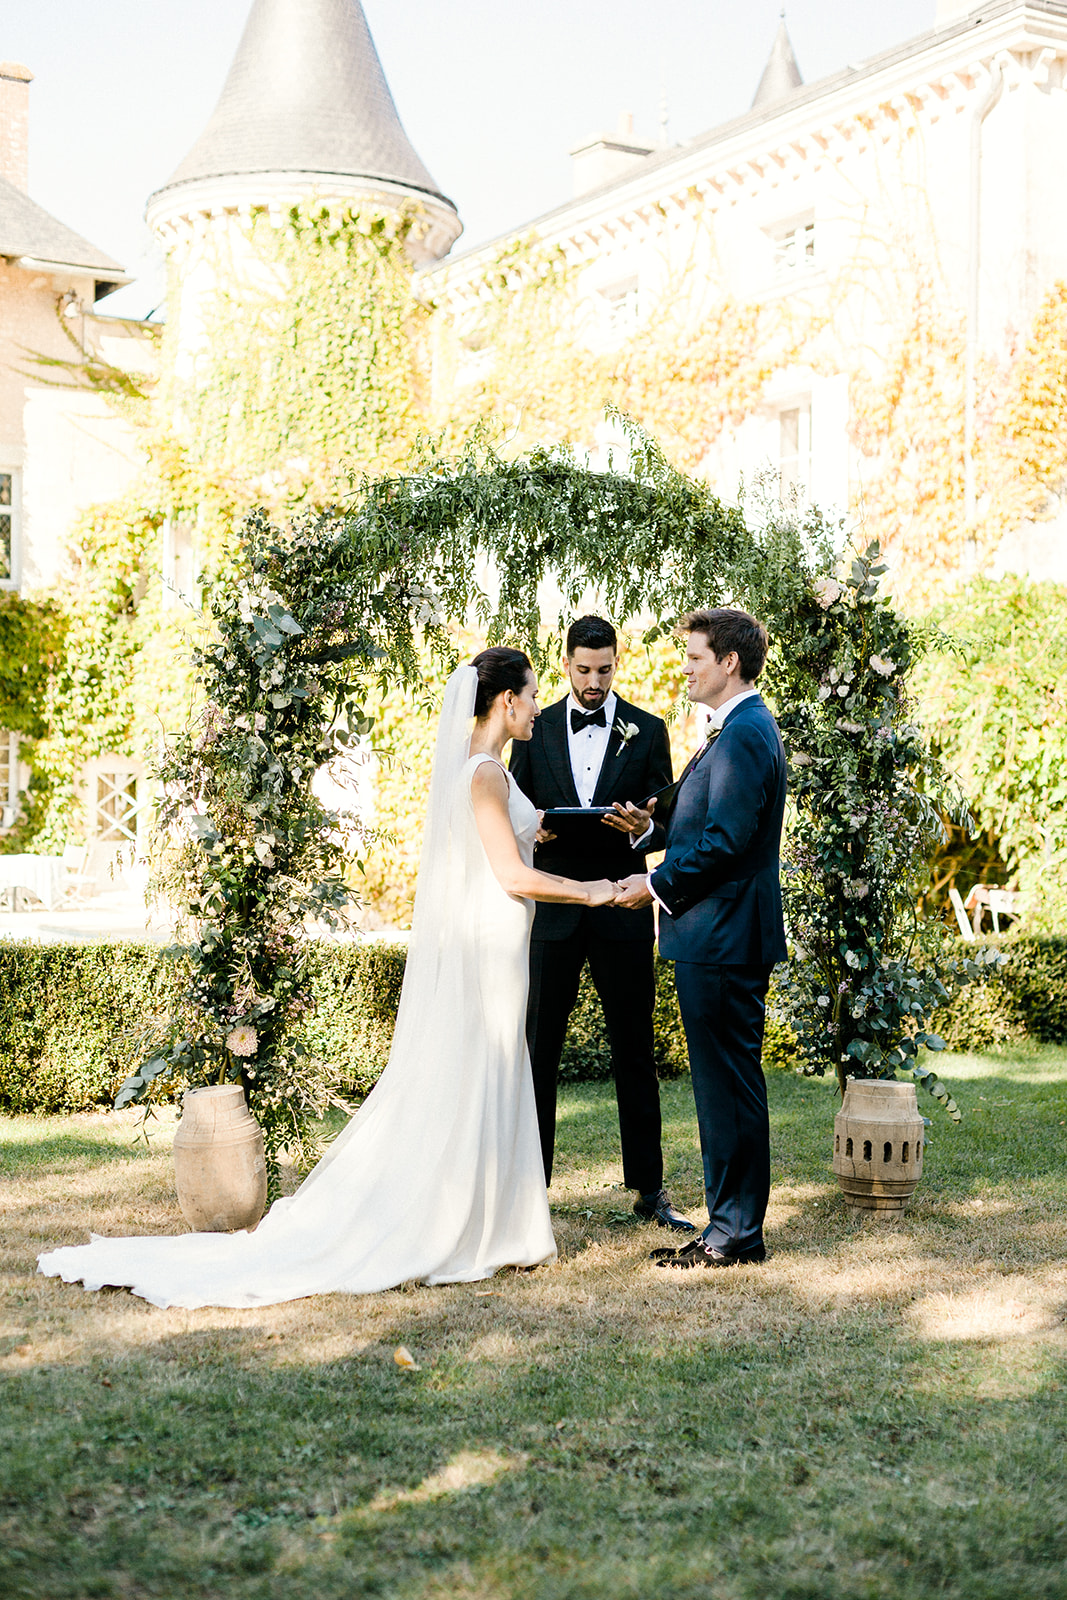 French Chateau Wedding, Events by Reagan, France Wedding, Destination Wedding Planner,Bride and Groom, Vow Renewal, Flower arch